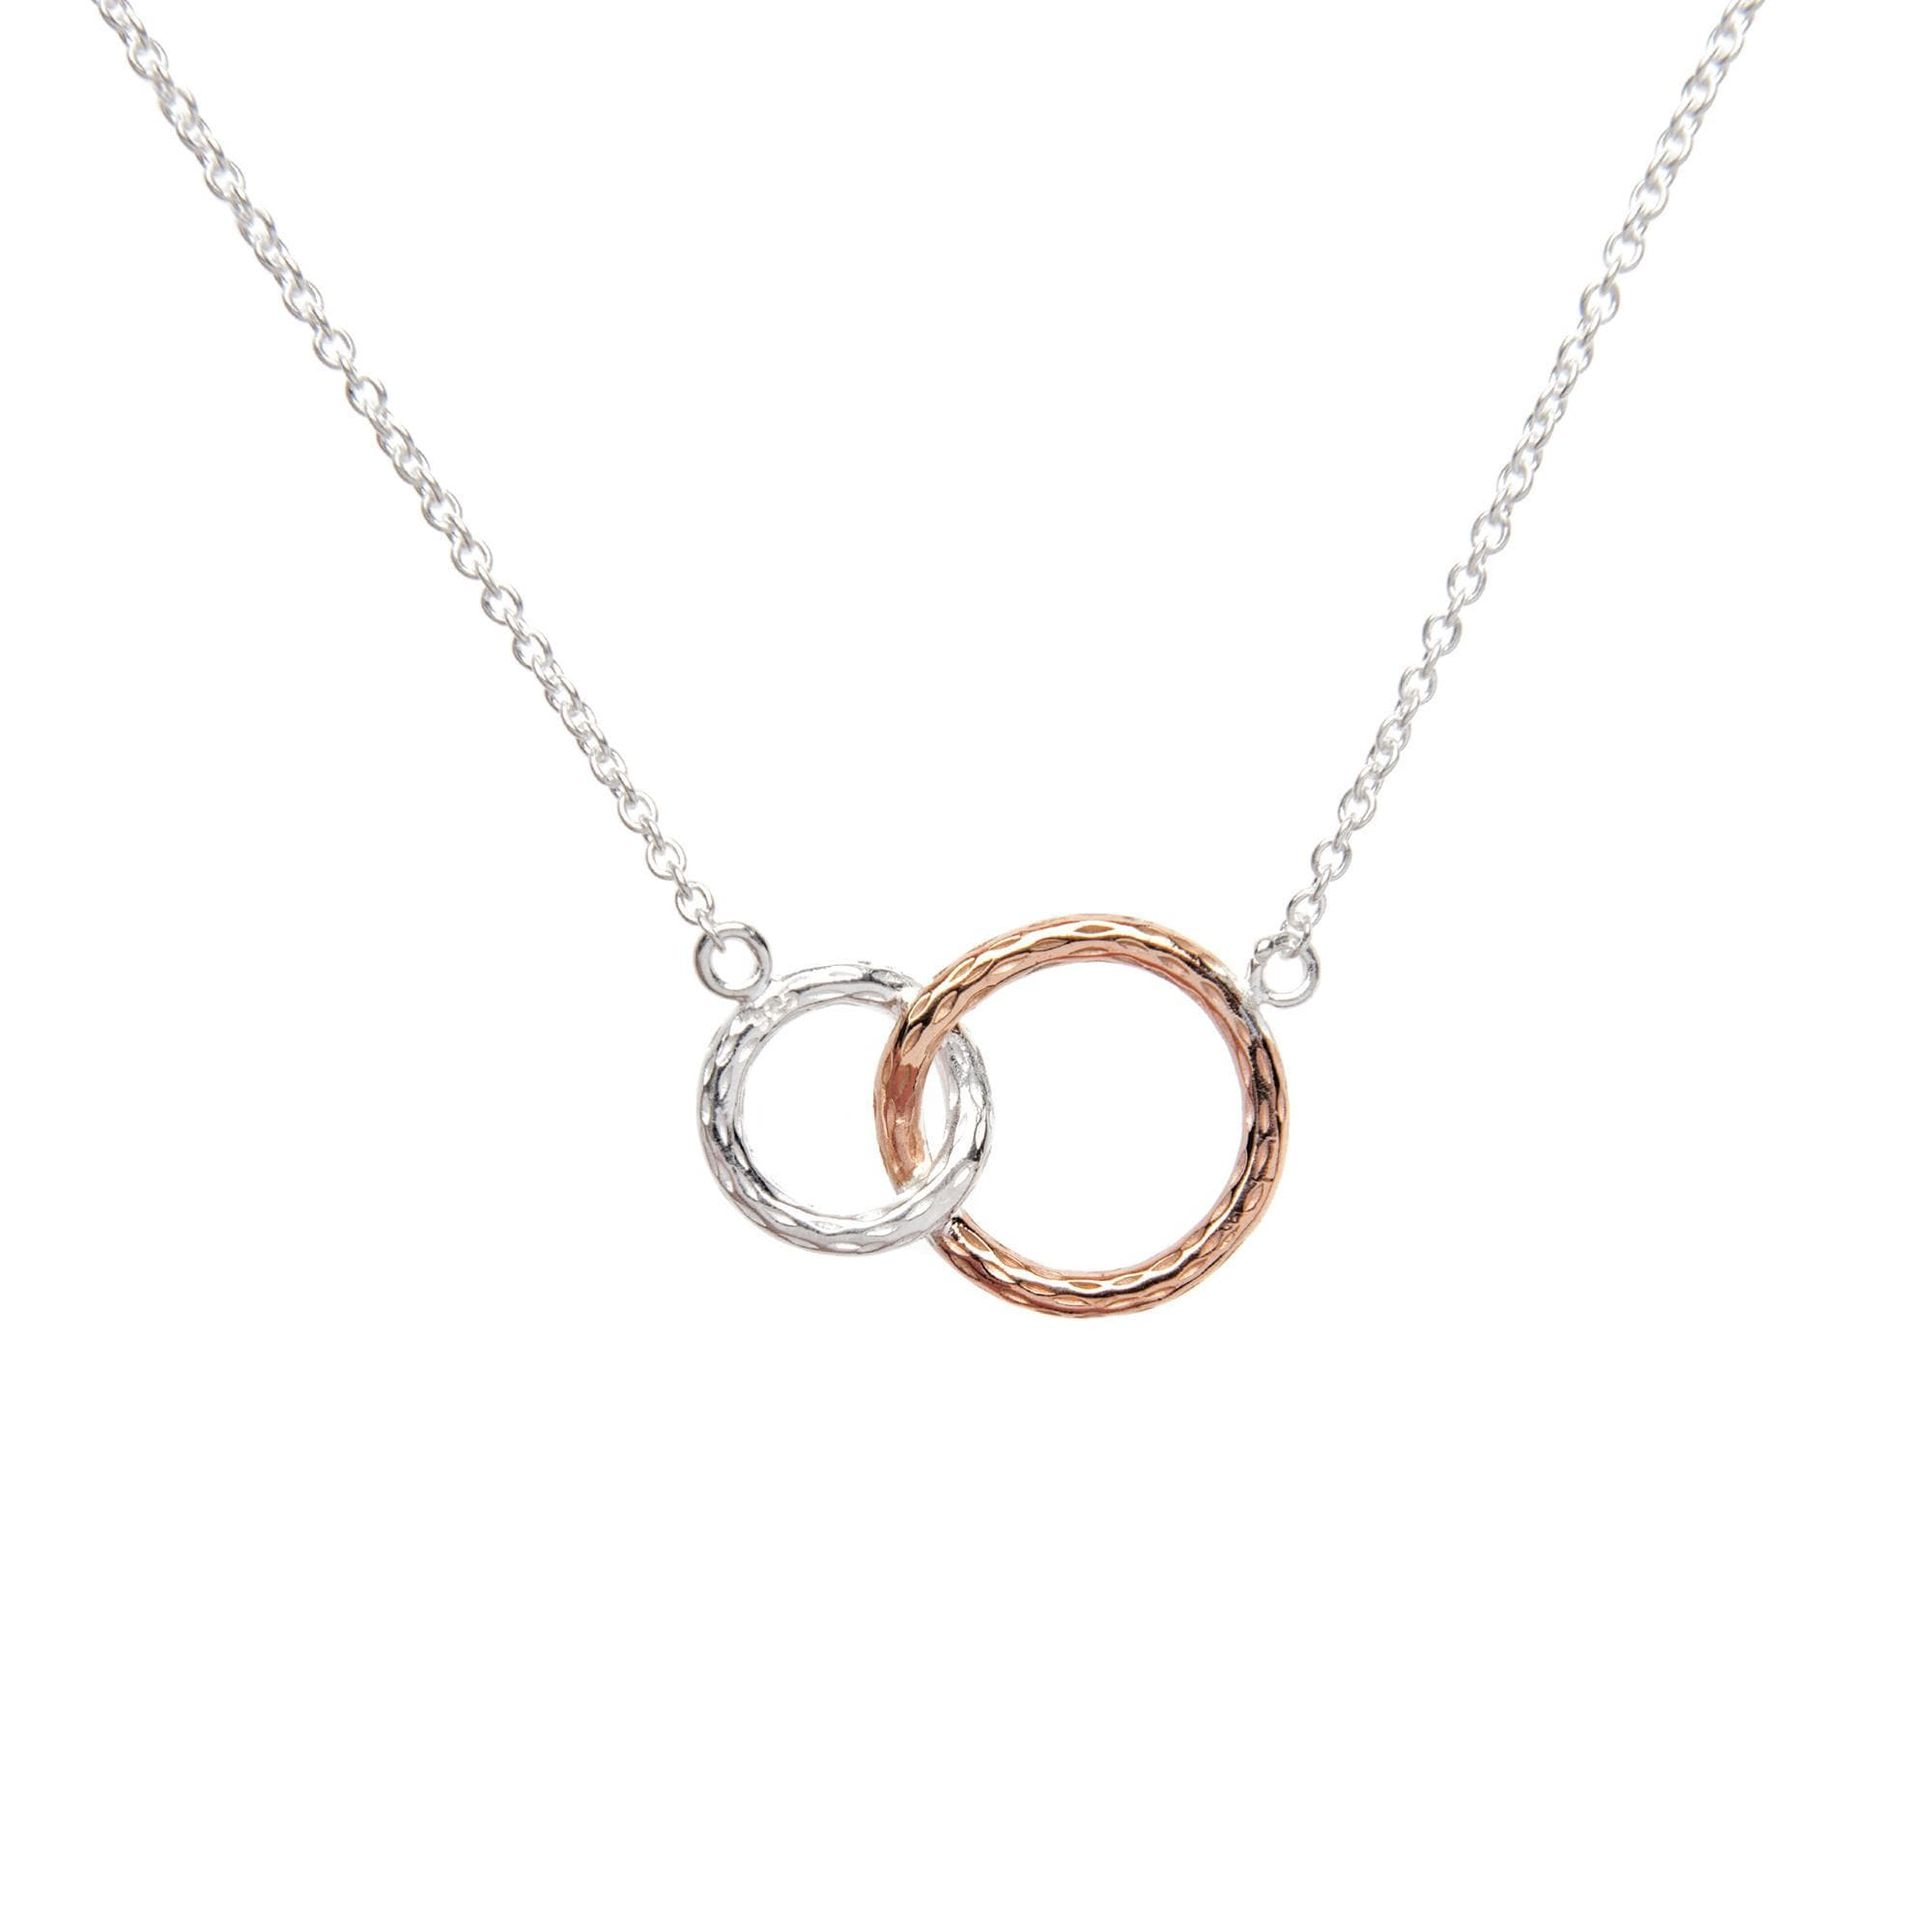 felicity gemstone the hoop multi filled pendant design necklace in gold valltasy